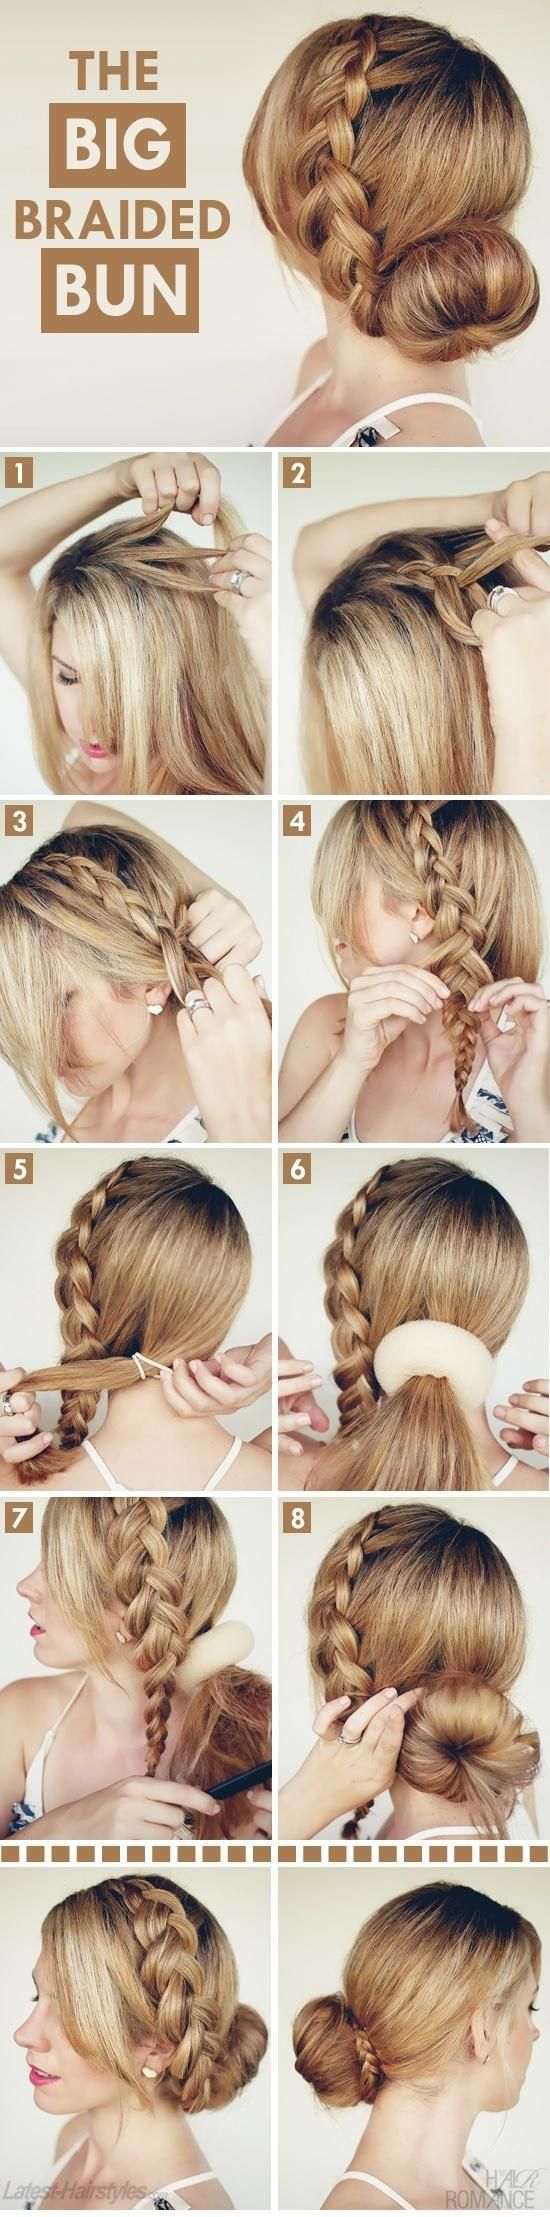 DIY Wedding Hair : DIY Wedding Hair